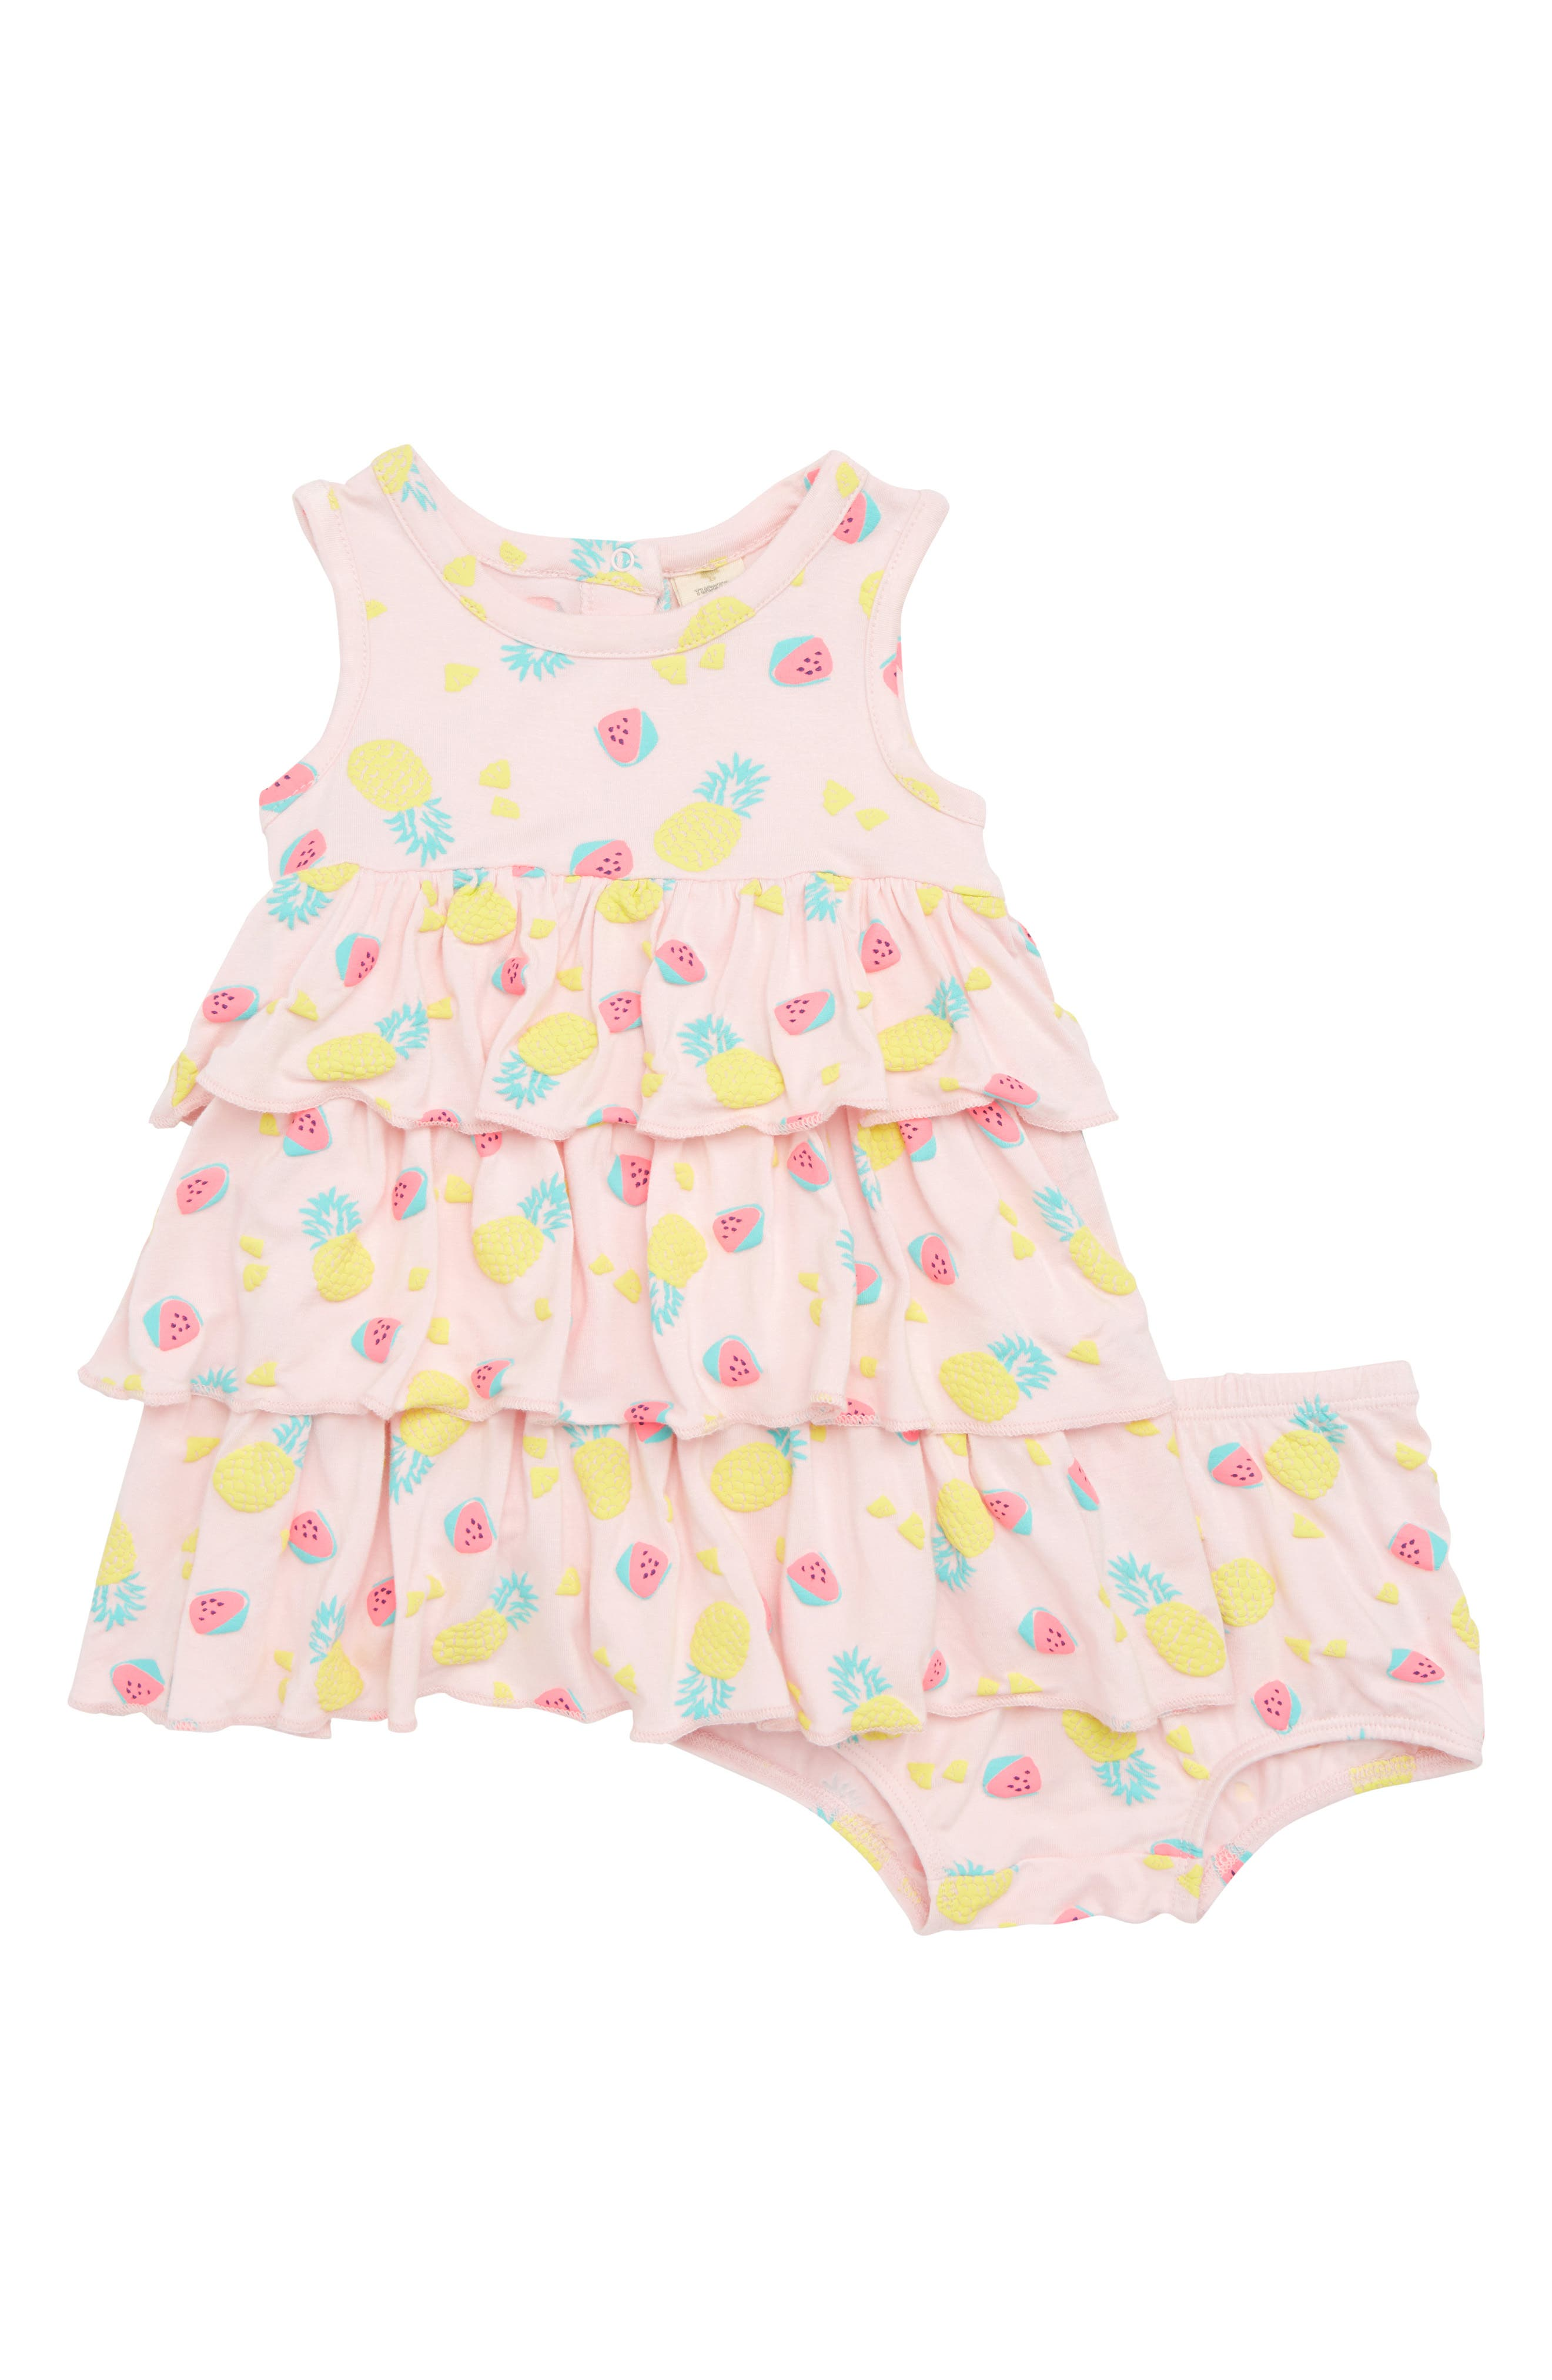 Tiered Sundress,                         Main,                         color, Pink Breath Fruits